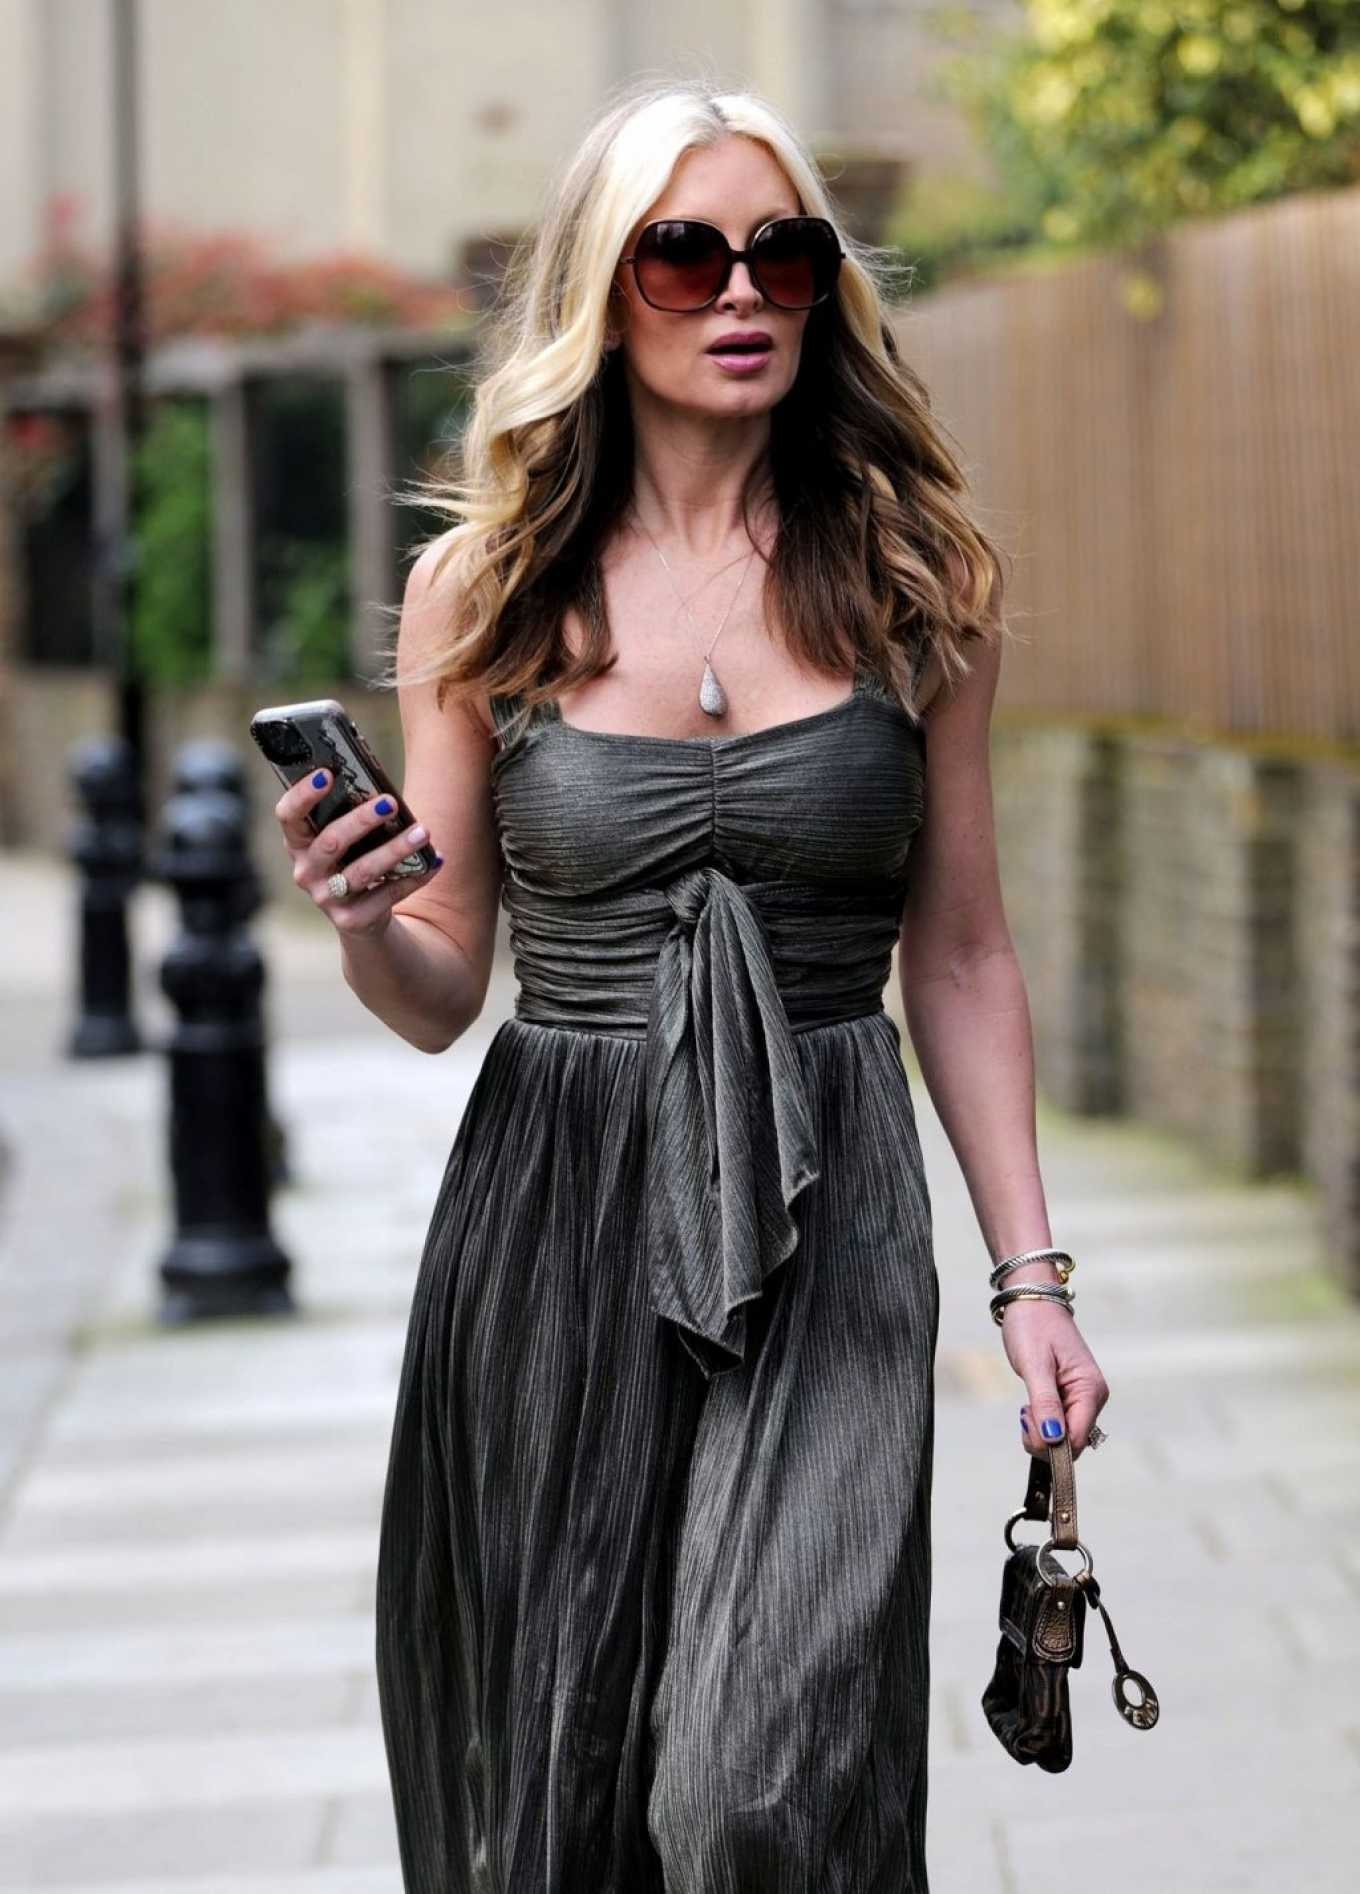 Caprice Bourret 2020 : Caprice Bourret – Out in London-18